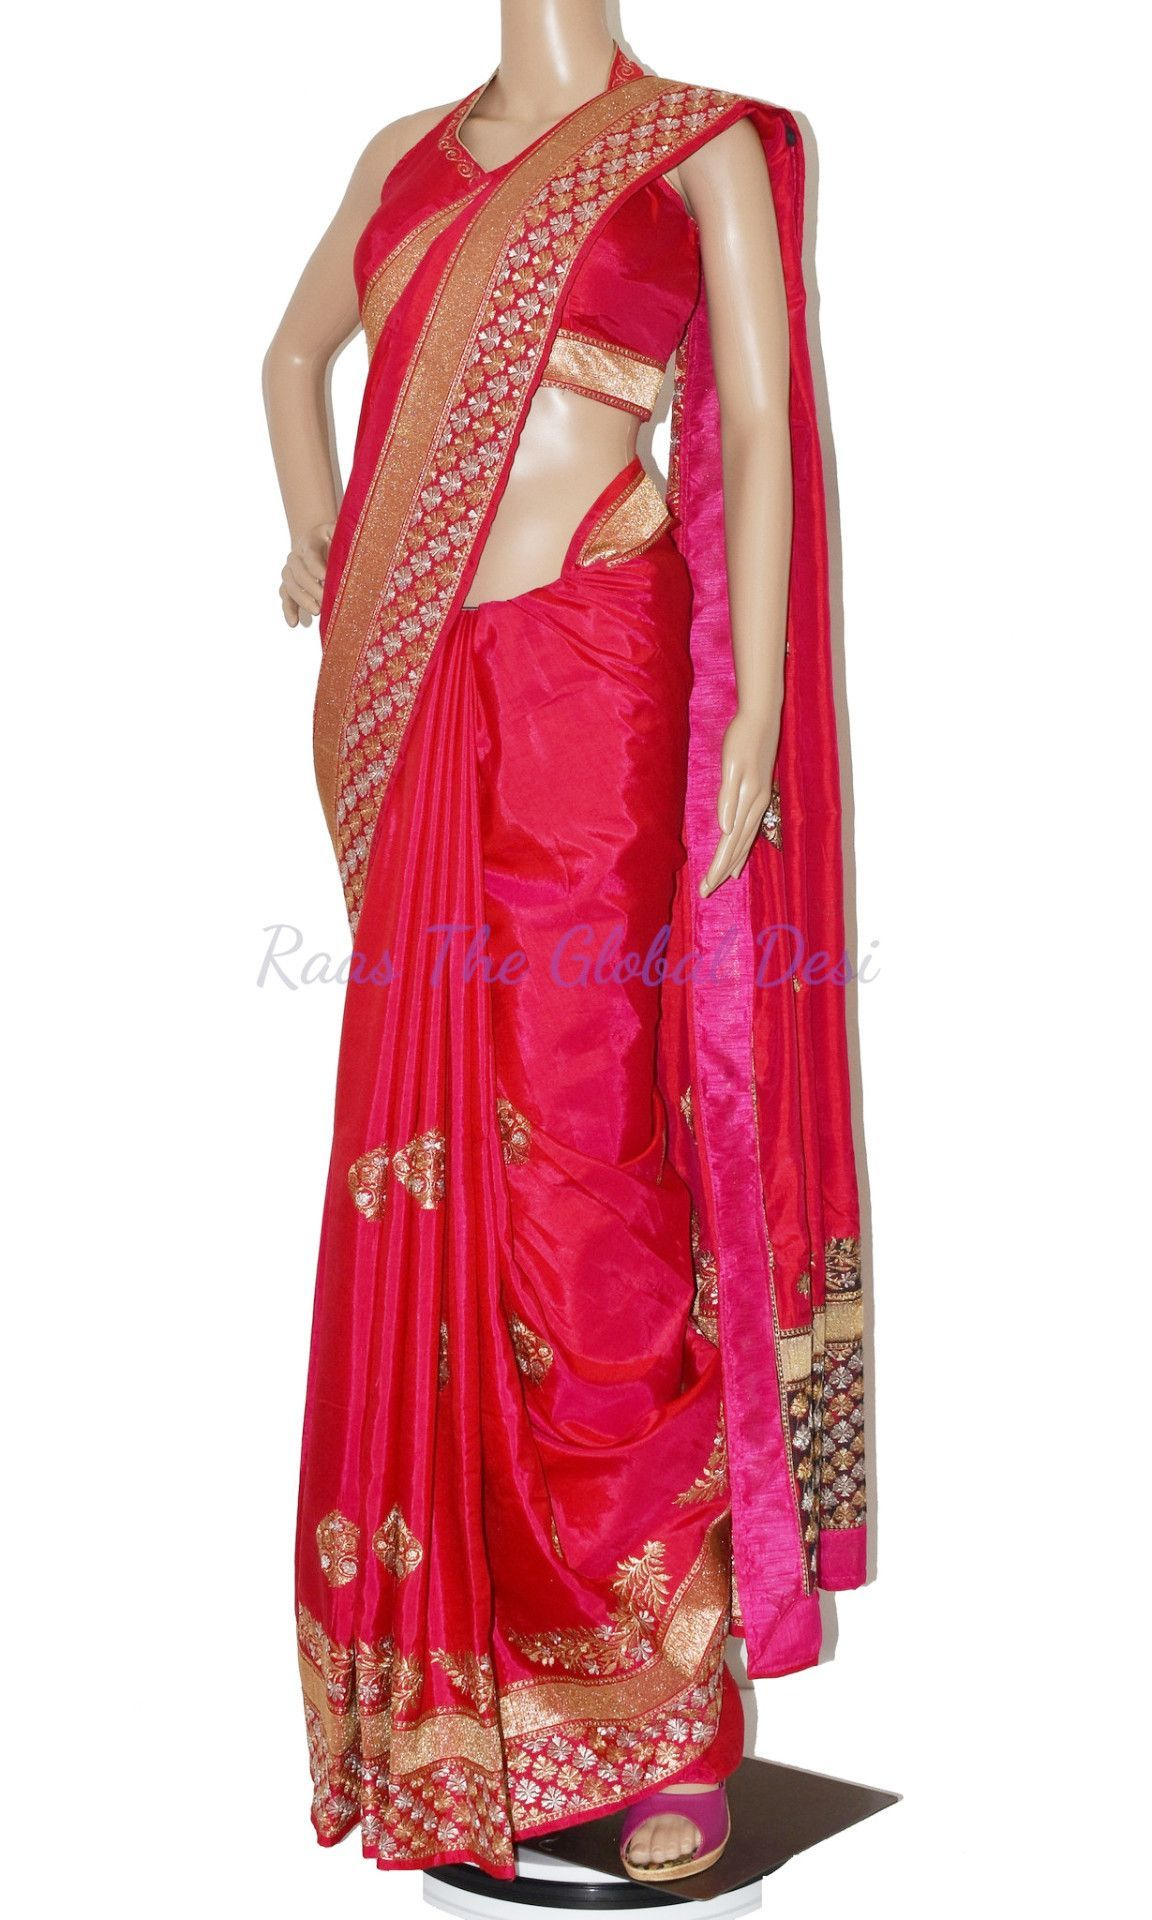 Silk woven saree with zari and designer hand work blouse makes it